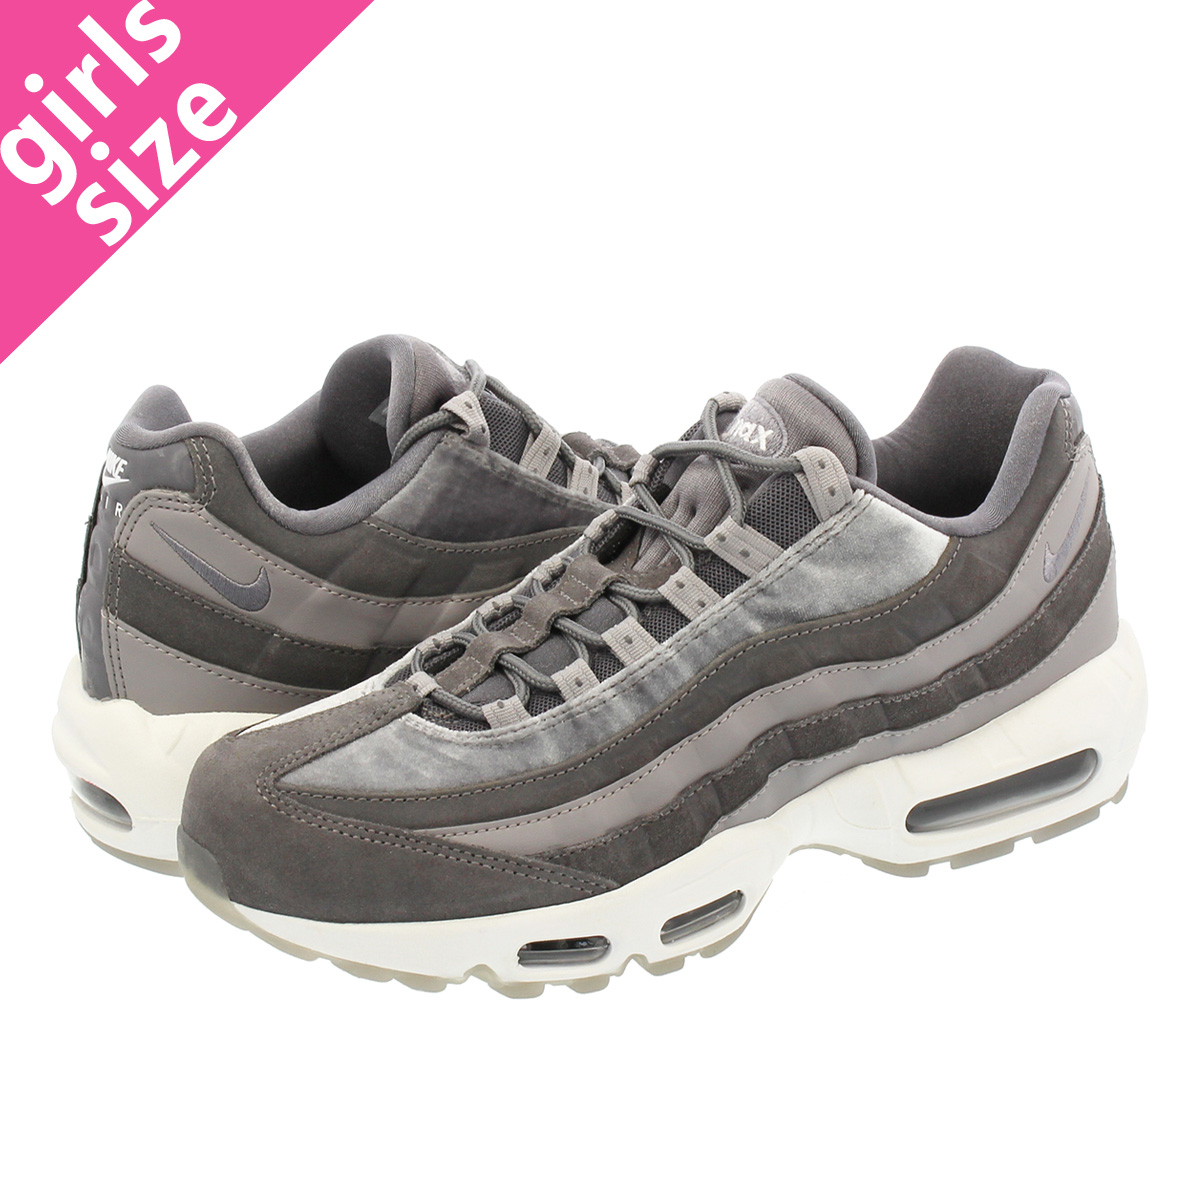 quality design d9c84 6acb3 NIKE WMNS AIR MAX 95 Nike women Air Max 95 LX GUNSMOKE GUNSMOKE ATMOSPHERE  GREY